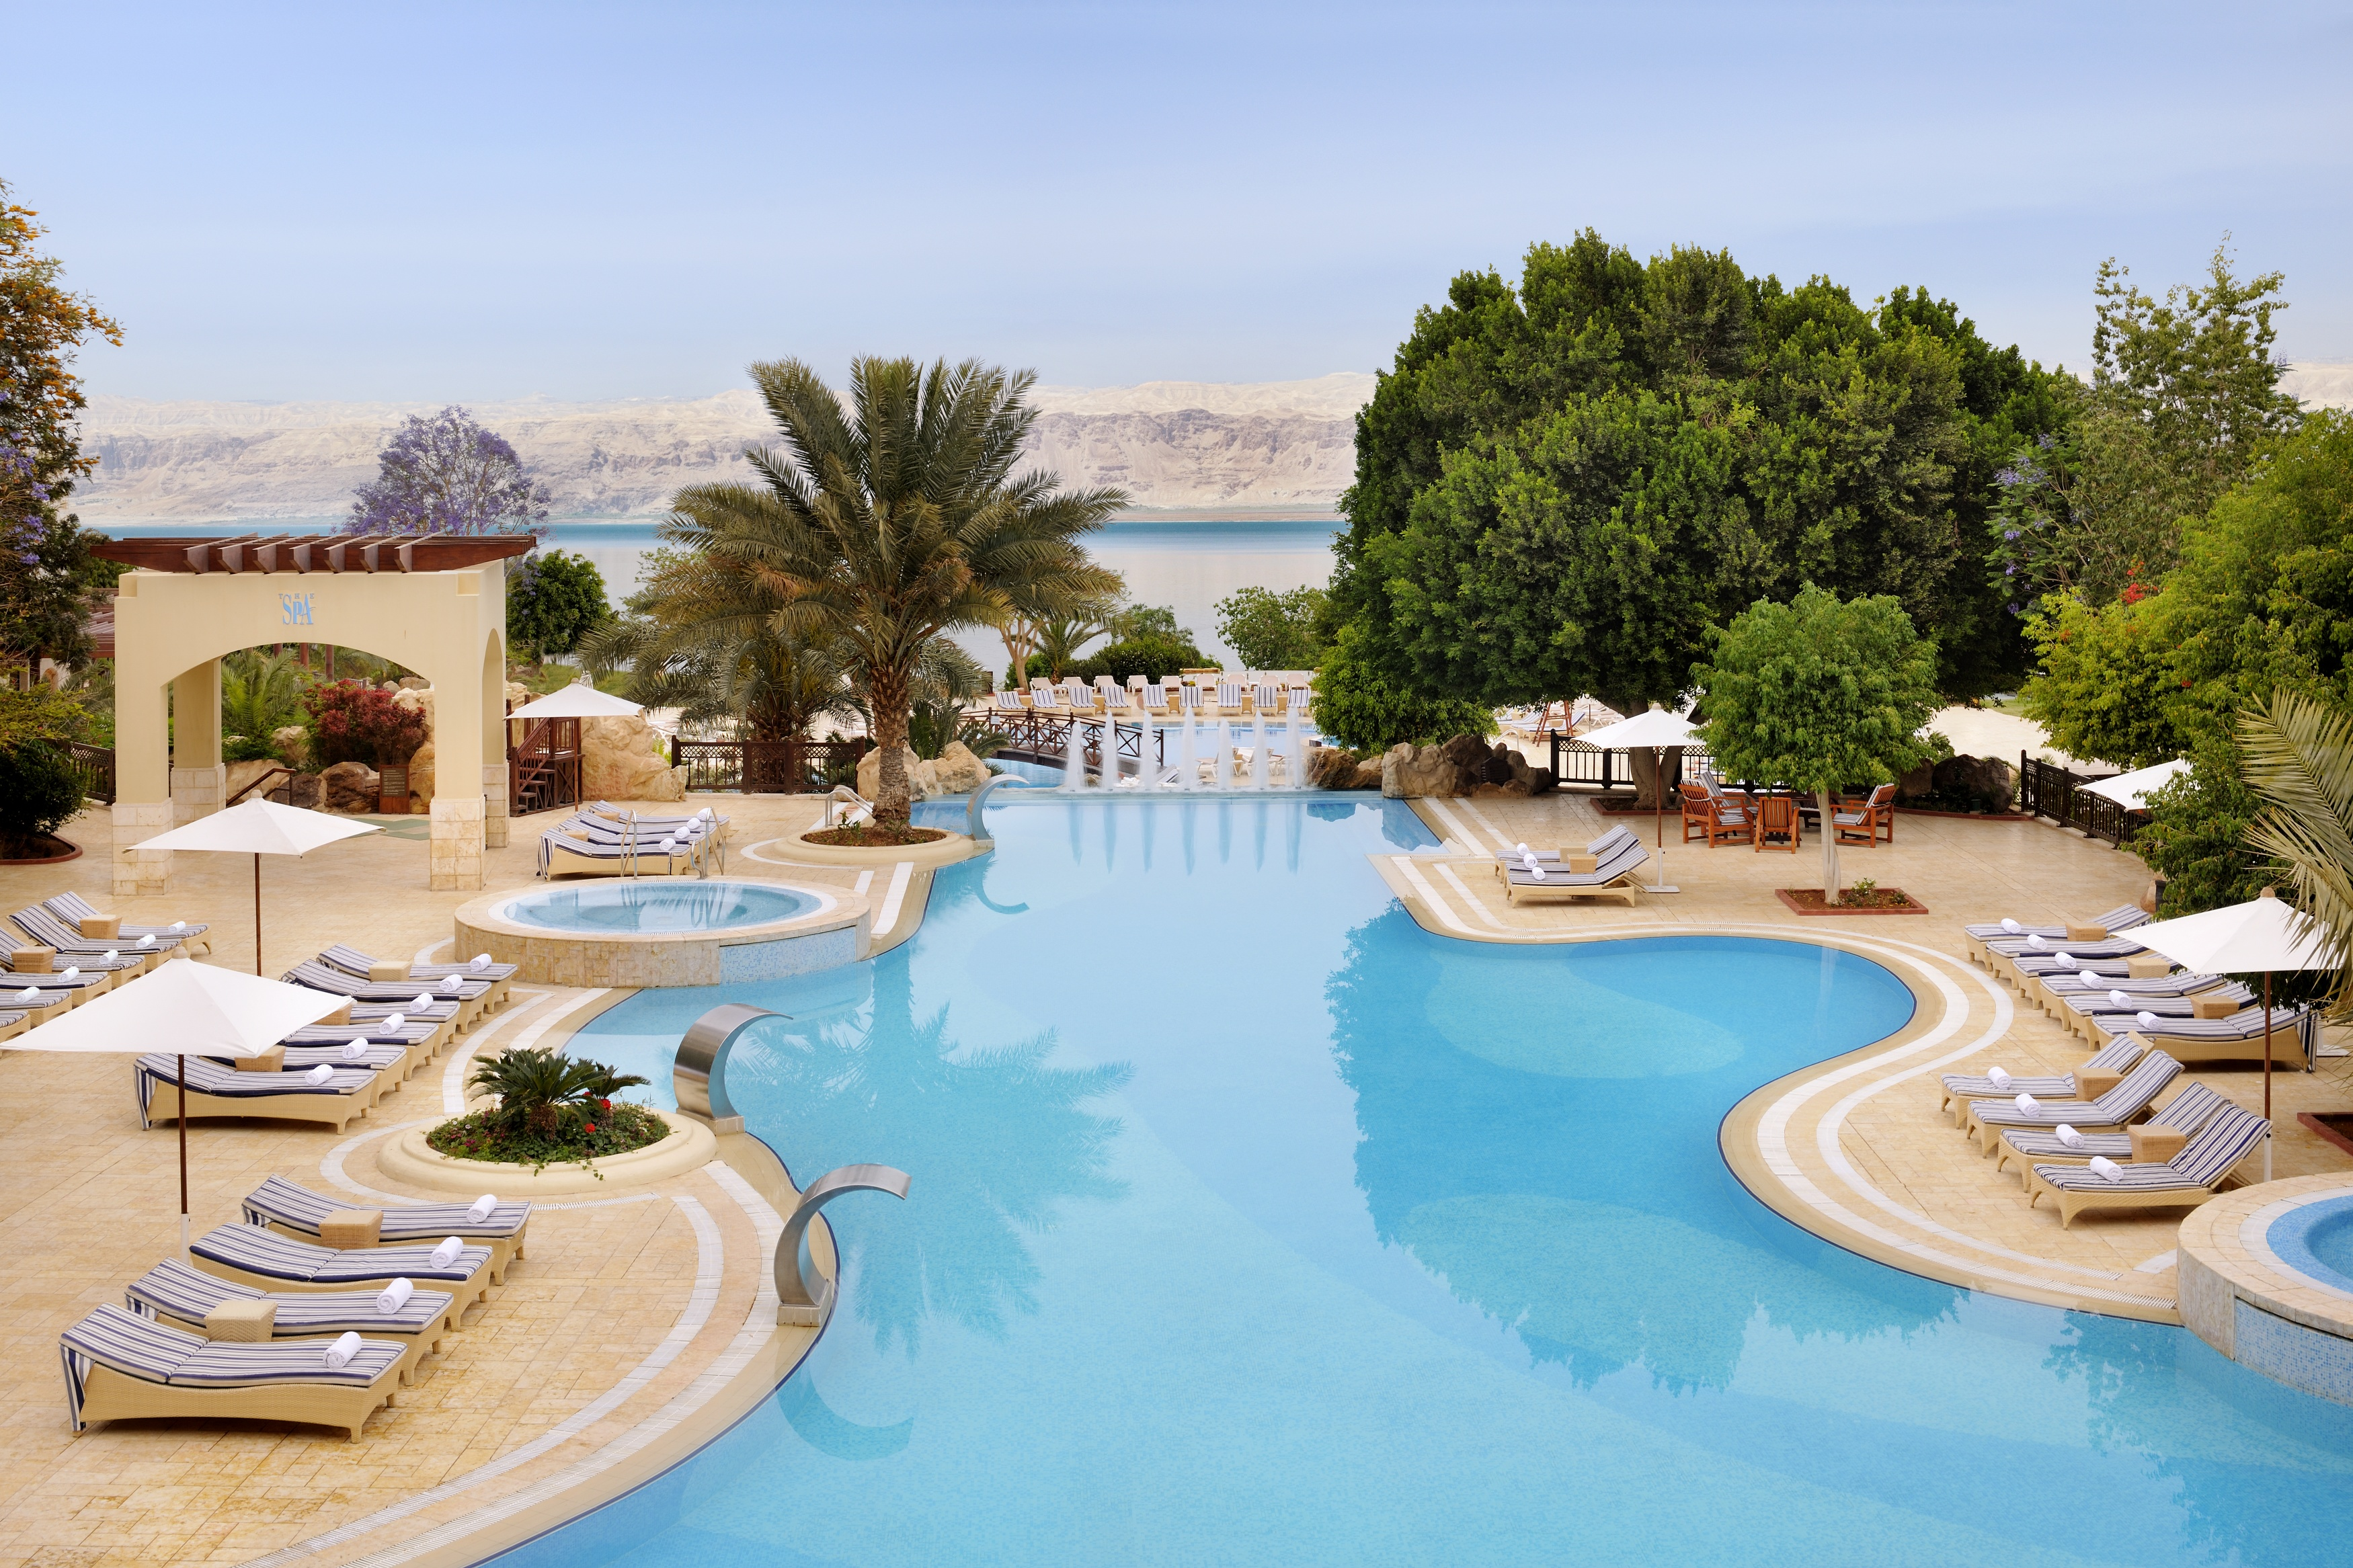 Jordan Valley Marriott Dead Sea Resort & Spa